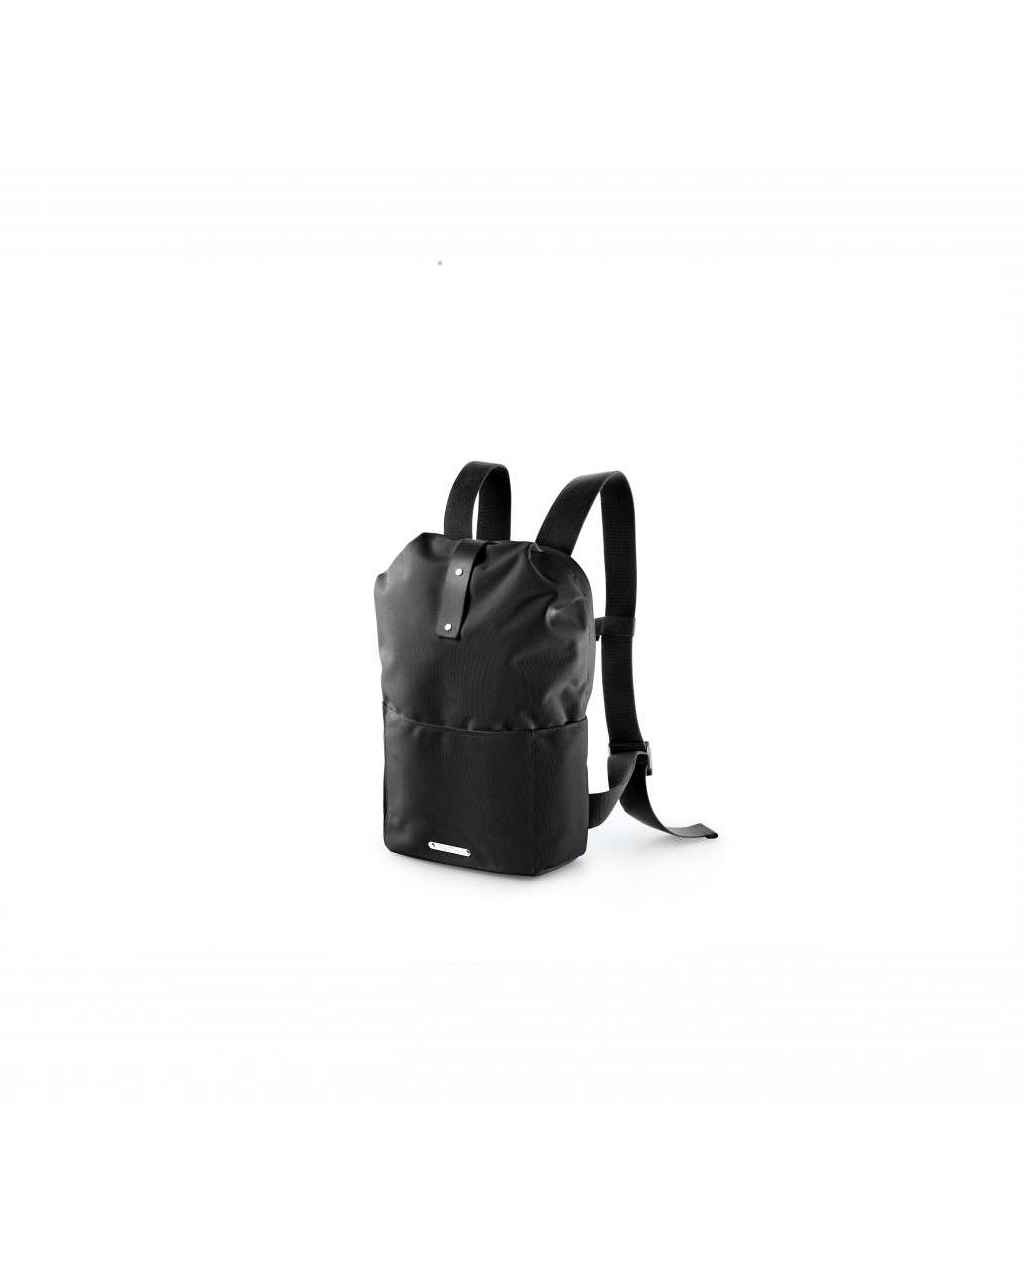 Brooks Dalston Knapsack Small - Black/Black